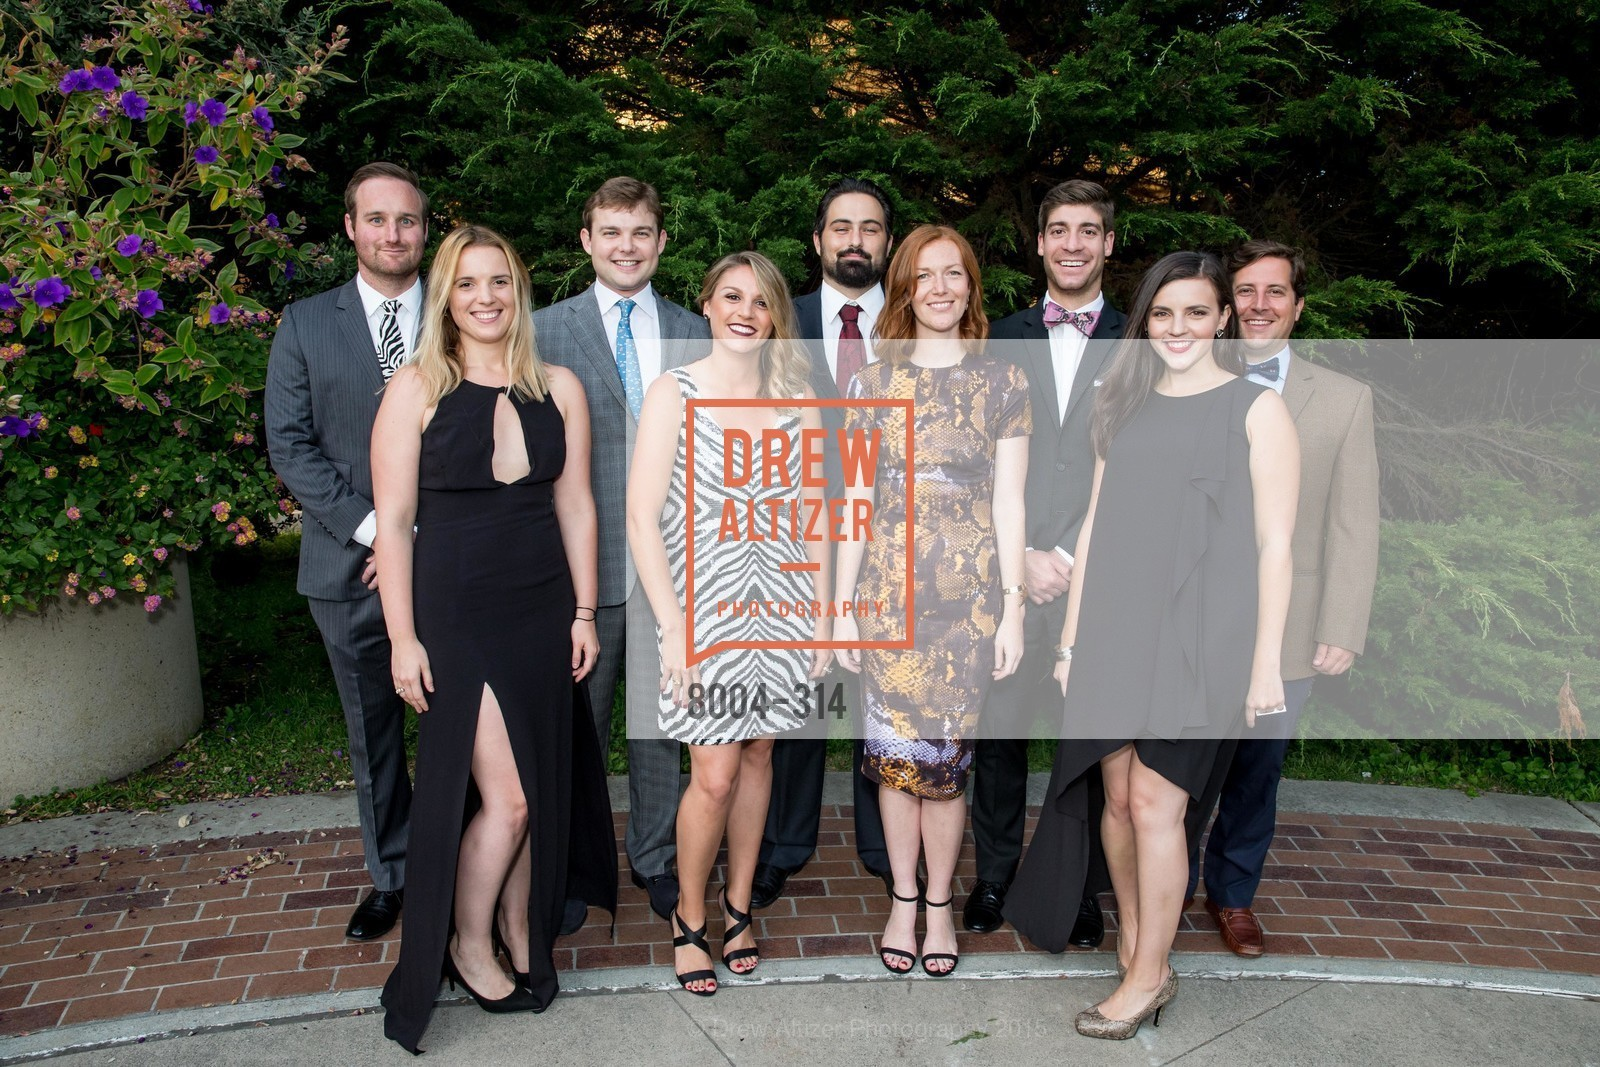 PJ Masterson, Erin Toth, Will Andereck, Michelle Sangiacomo, John Mutlow, Willa Moore, Clay Jameson, Aly Spradlin, Mike Ritter, San Francisco Zoo Fur Ball, San Francisco Zoo, September 25th, 2015,Drew Altizer, Drew Altizer Photography, full-service agency, private events, San Francisco photographer, photographer california